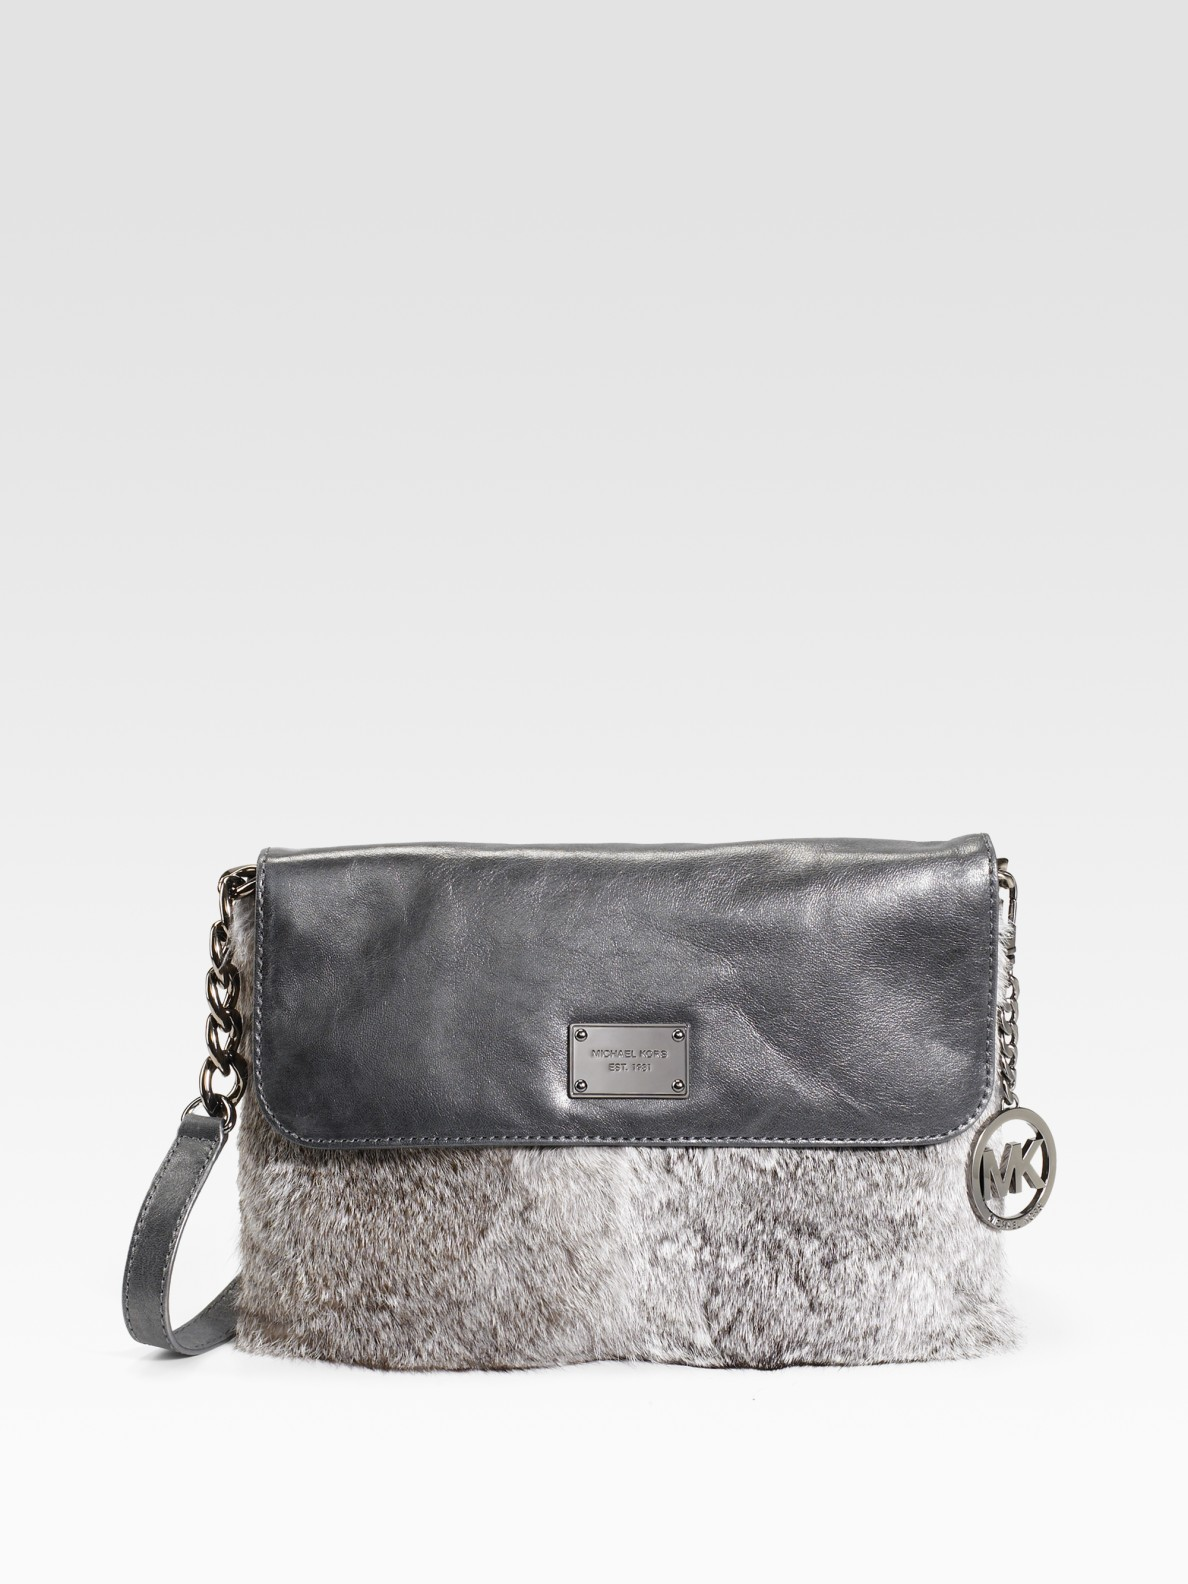 Michael Kors Fur Shoulder Bag 103